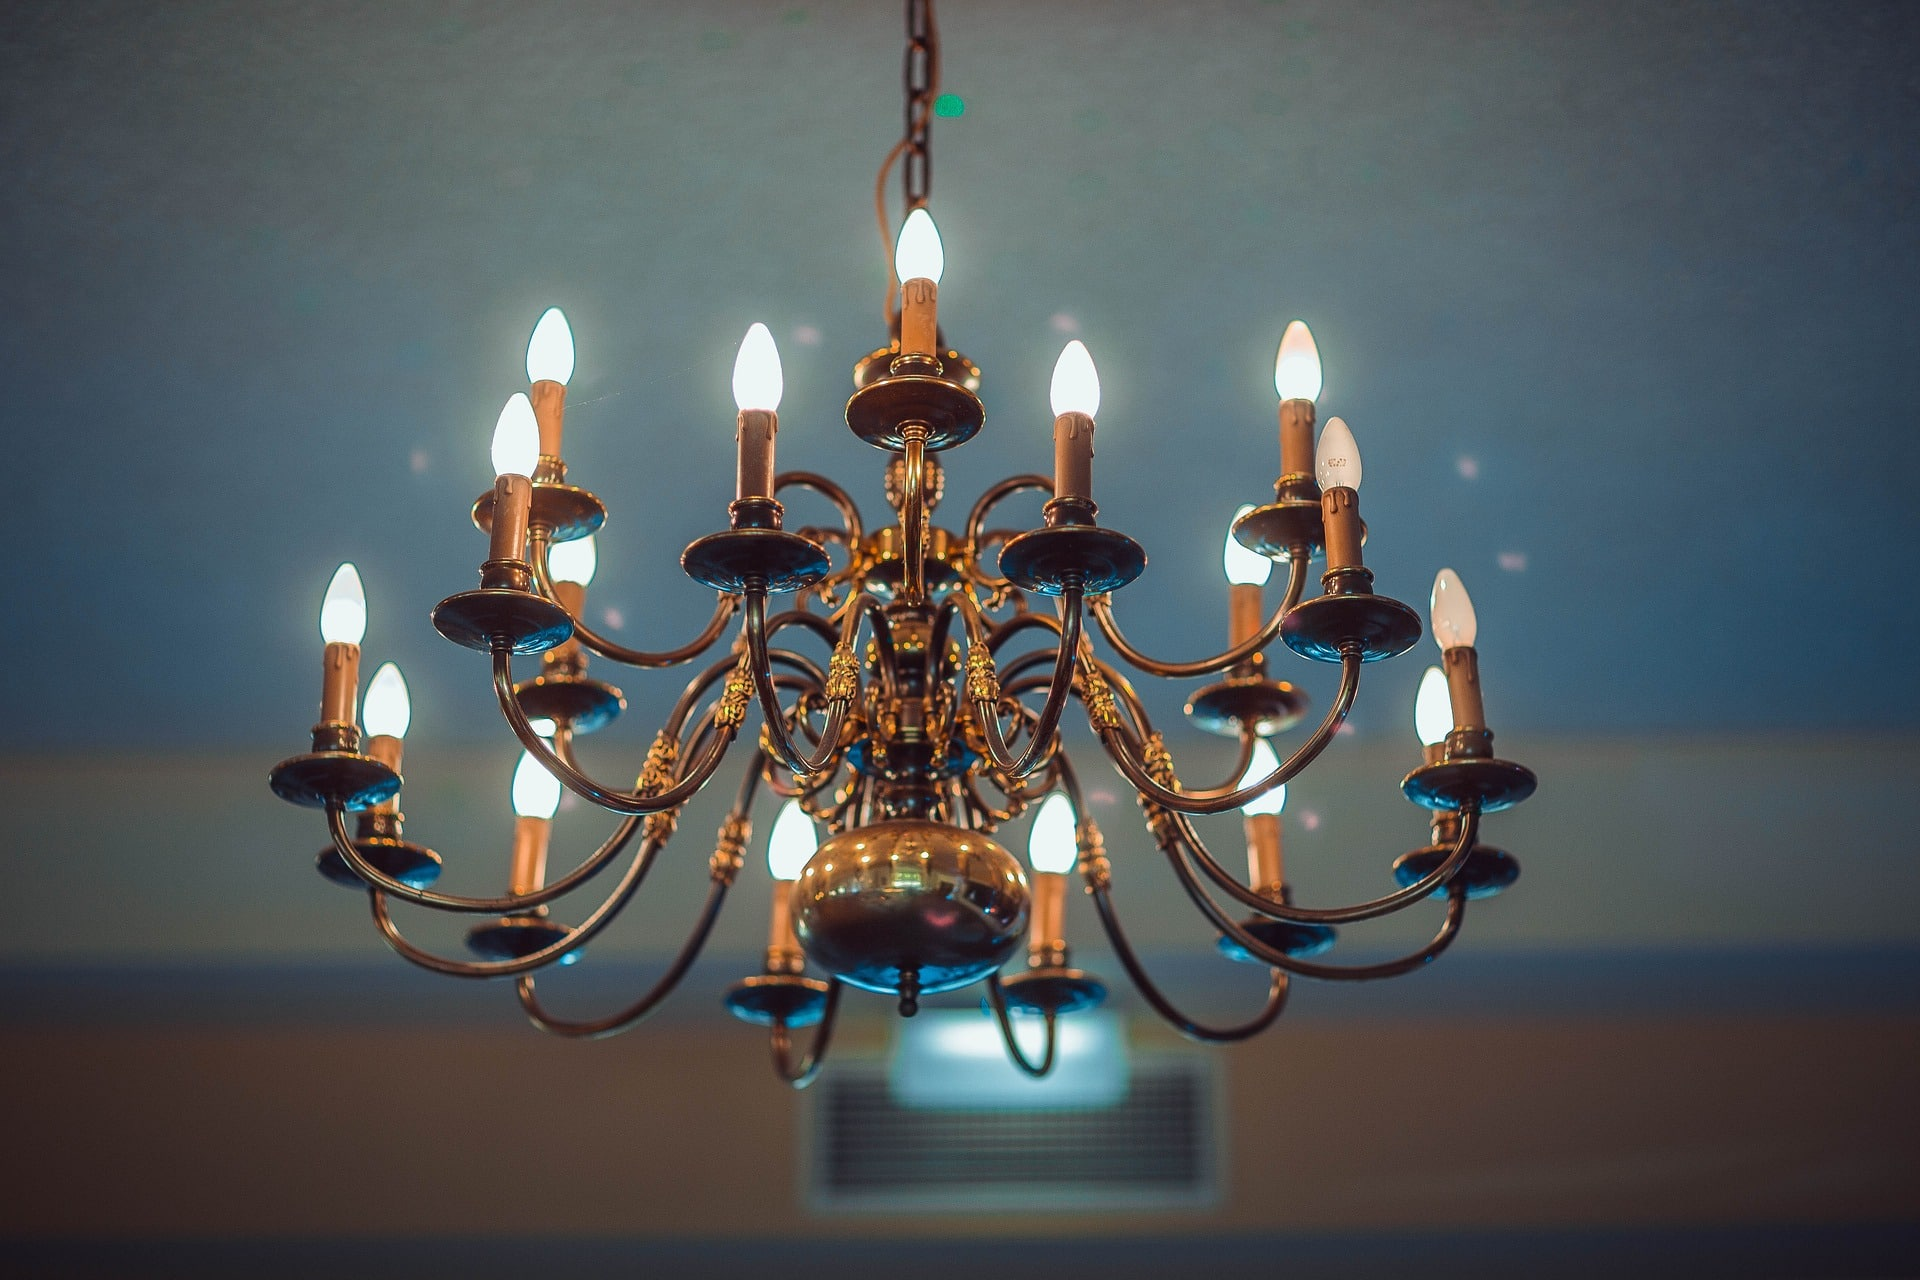 Wiring A Light Fixture Troubleshooting Diagram Essig Chandelier Diagrams Source Recessed Electrician In Carroll County